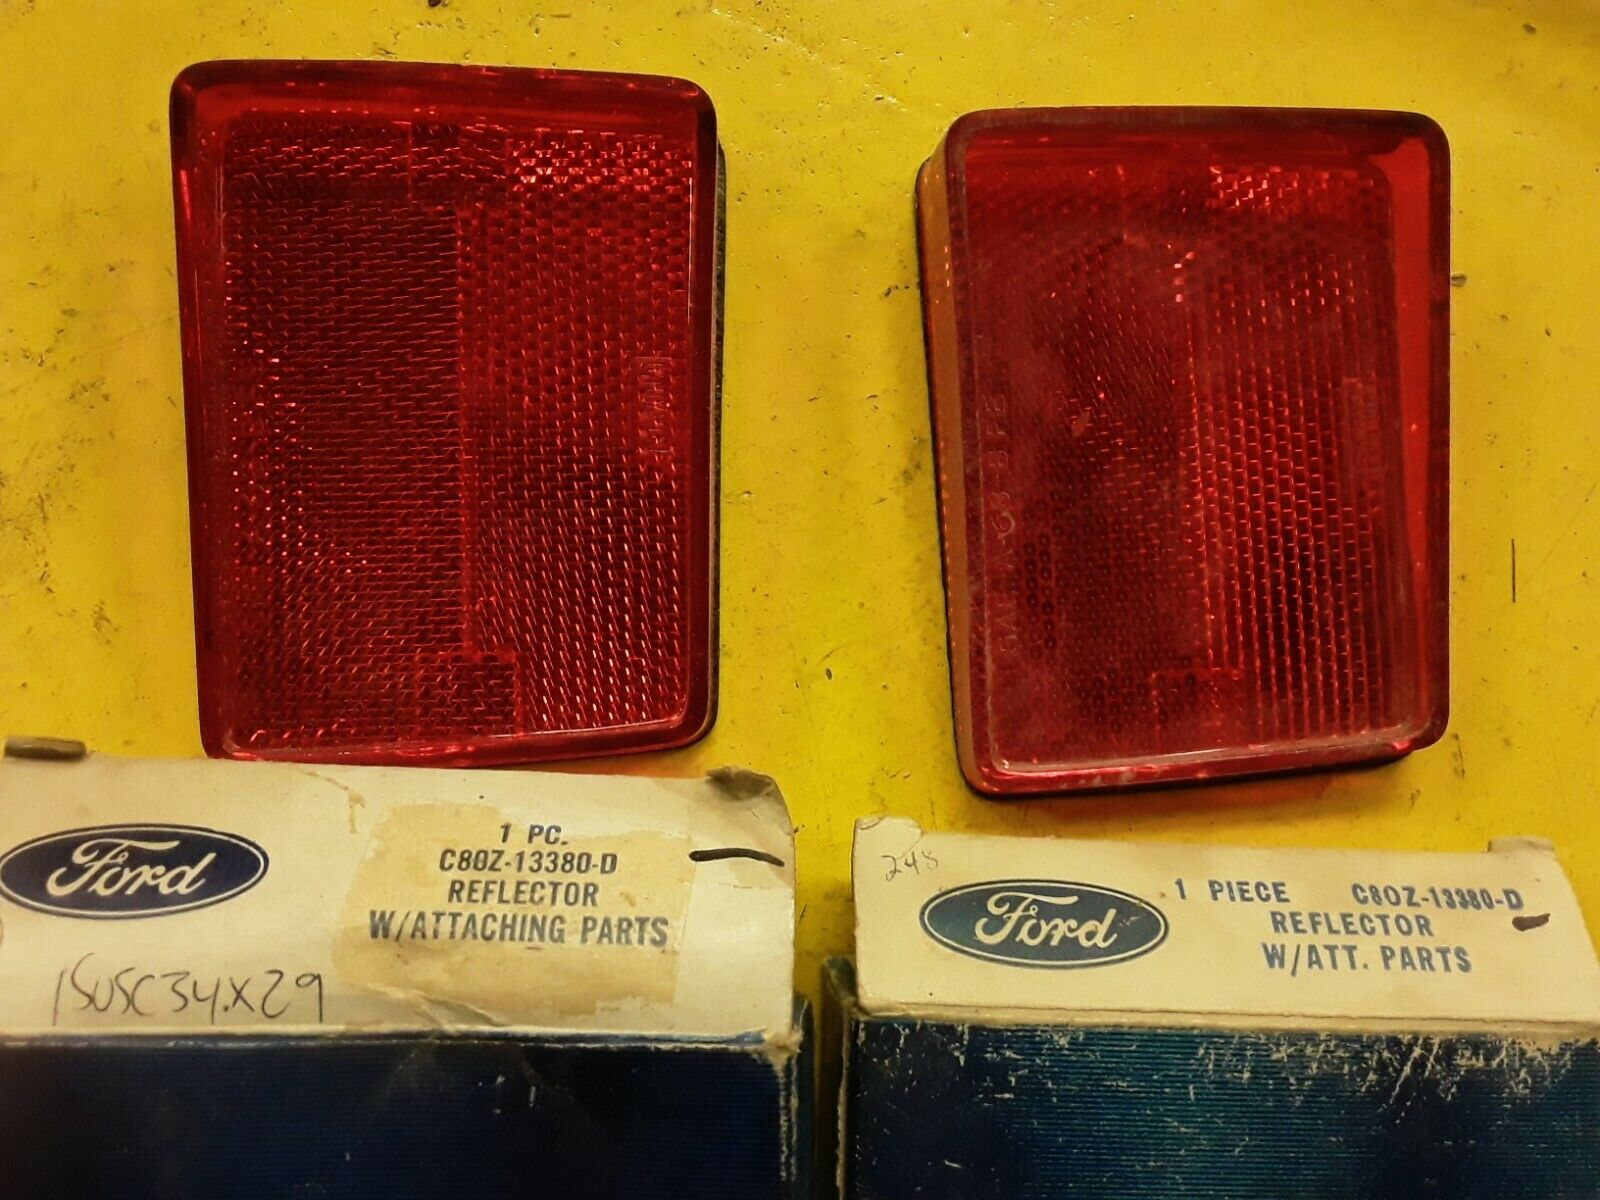 NOS 1968 Ford Torino Fairlane Fastback RH Rear Reflector C80Z-13380-D (QTY 2) Does not apply